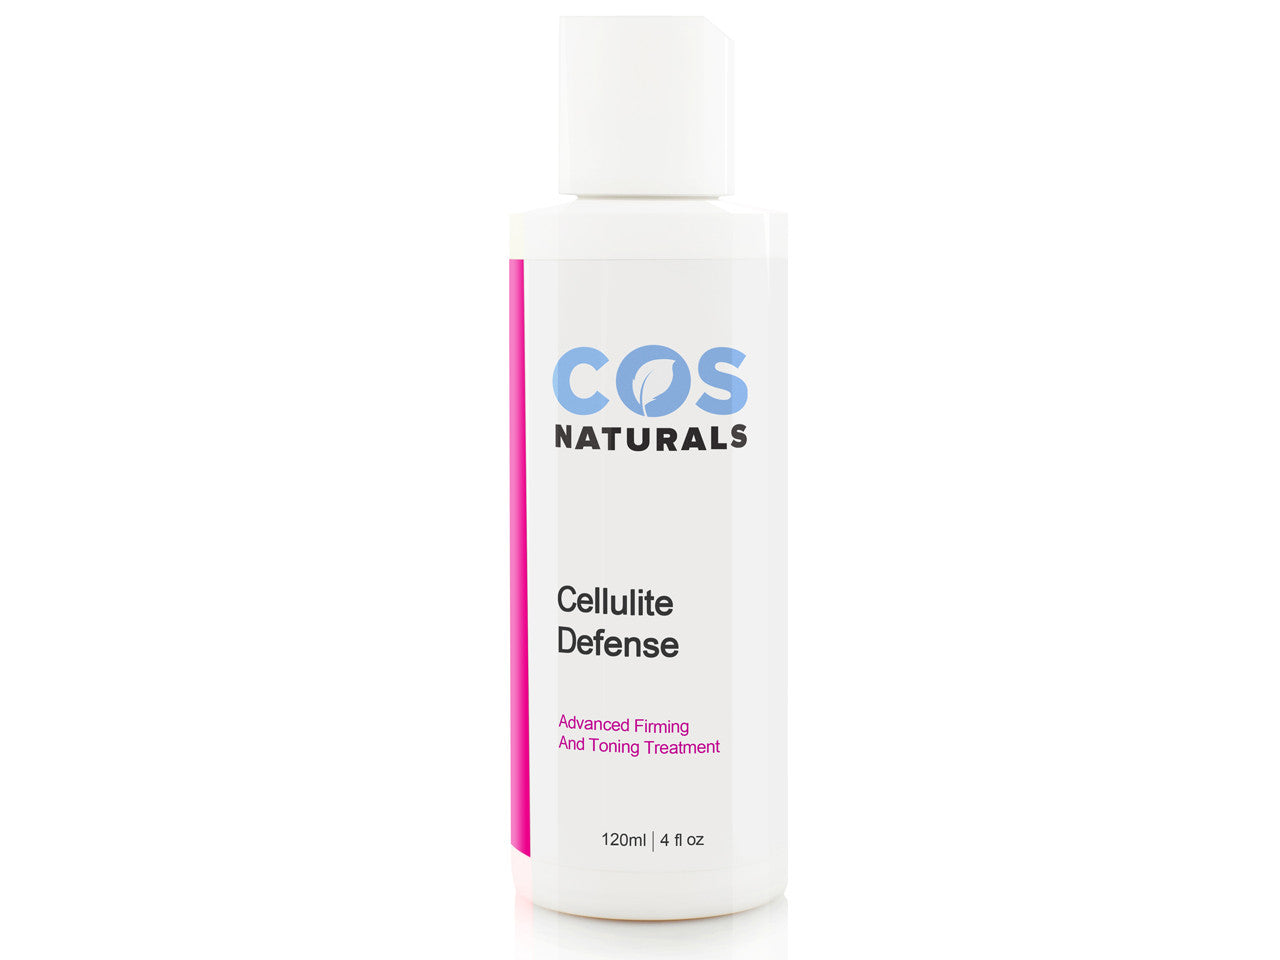 CELLULITE DEFENSE CREAM Natural And Organic Ingredients ADVANCED FIRMING & TONING TREATMENT Anti-Cellulite Lotion, 4 Oz